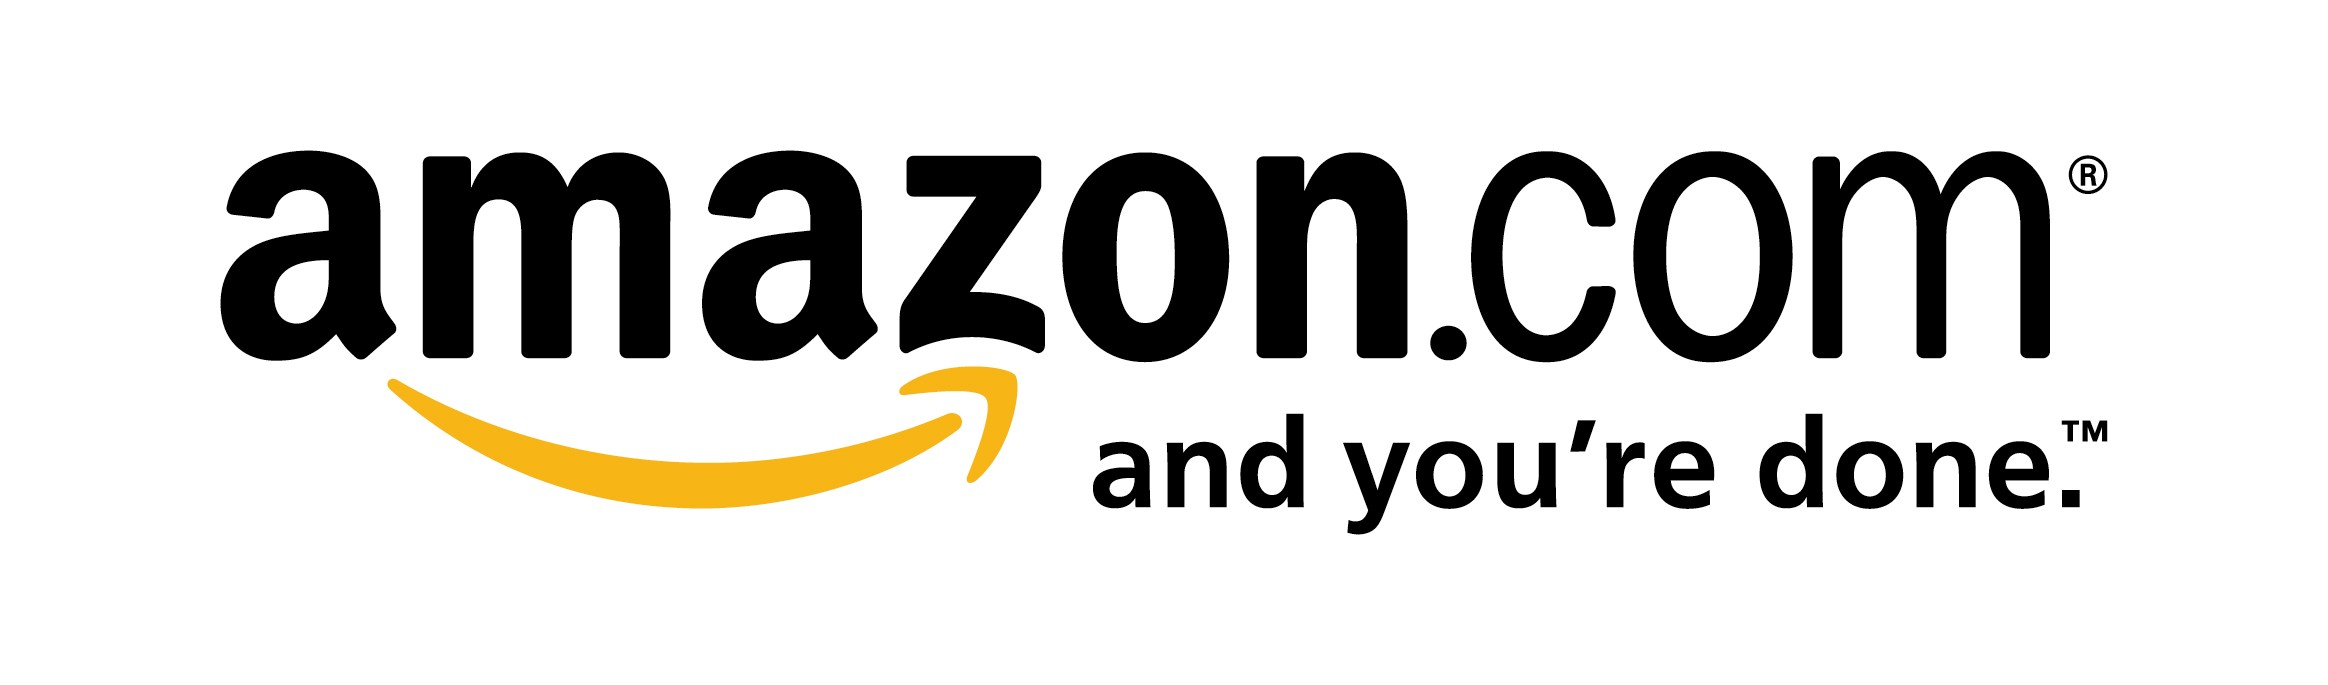 watch amazon on demand outside the usa